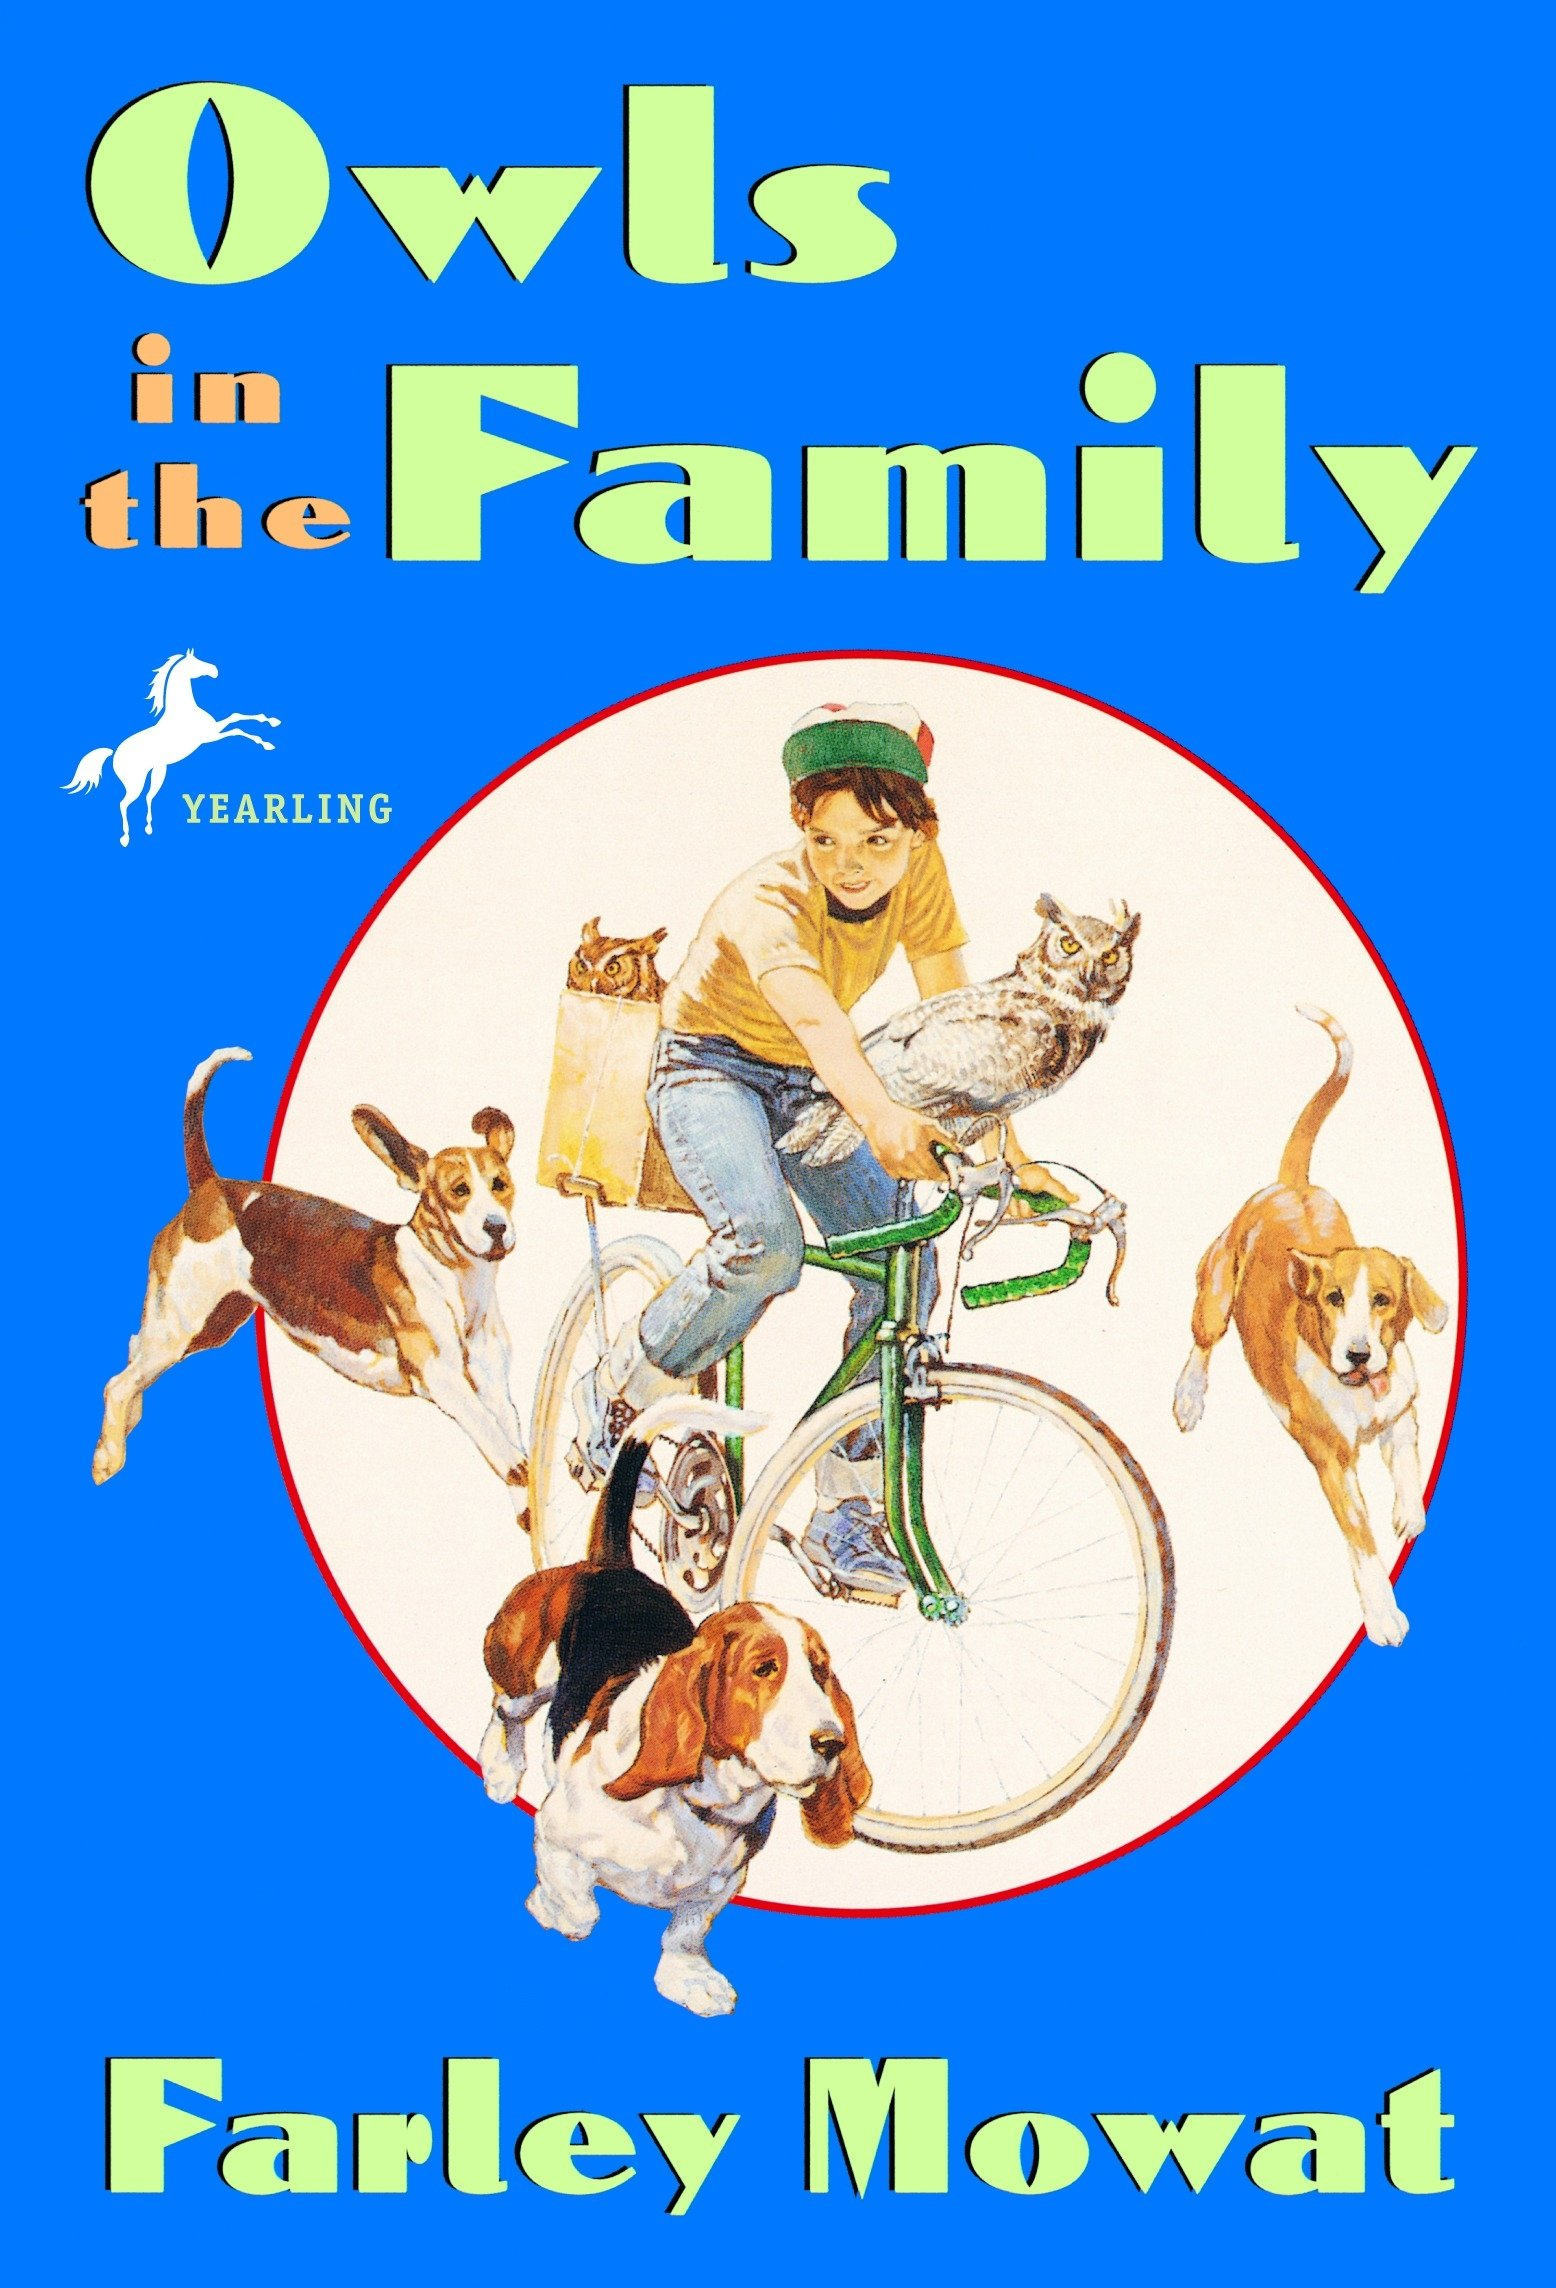 Amazon.com: Owls in the Family: 9780440413615: Mowat, Farley: Books